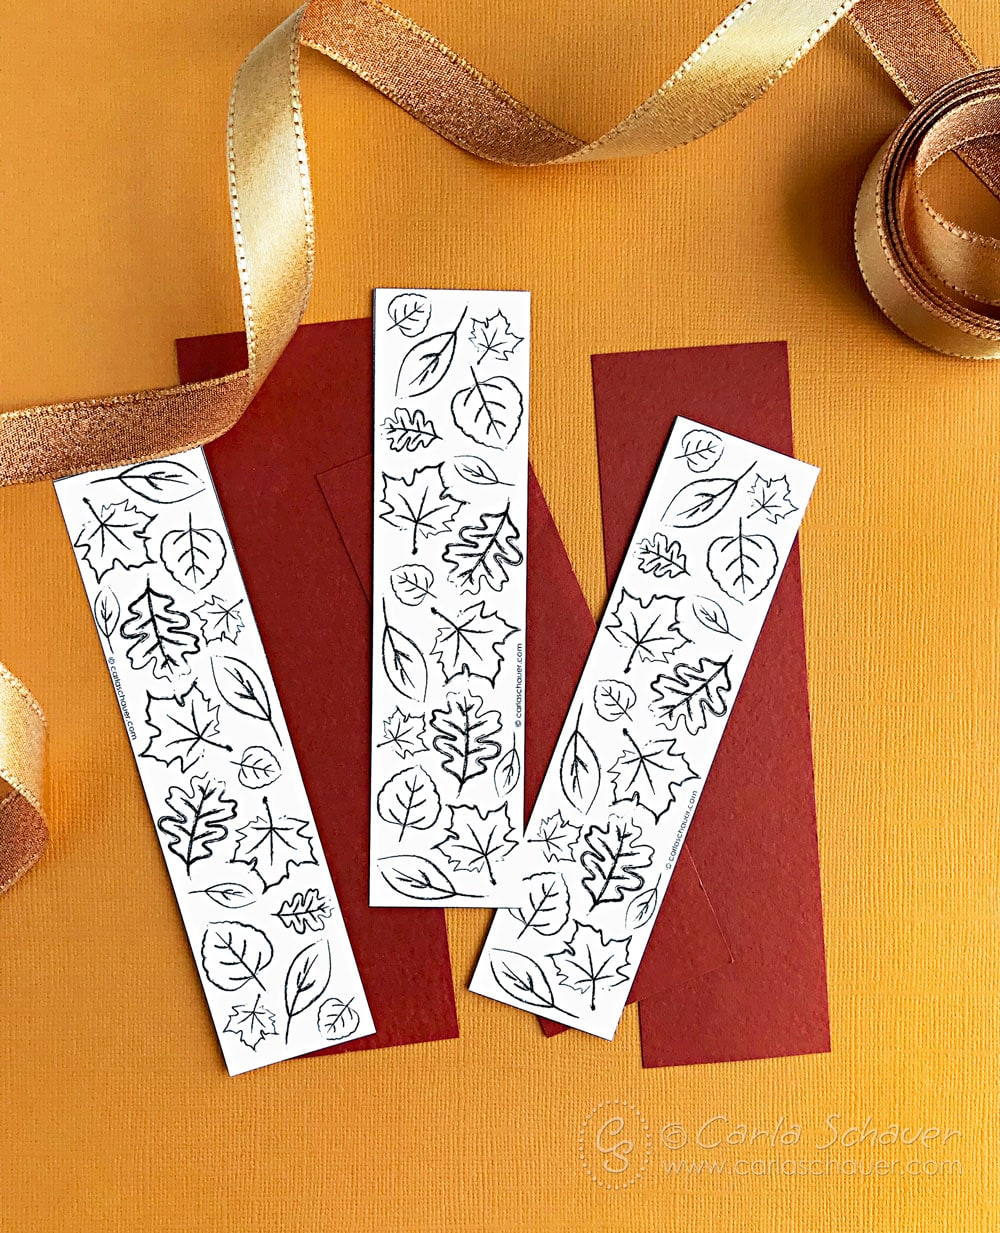 Cut out printable leaf bookmarks on rust colored paper strips.